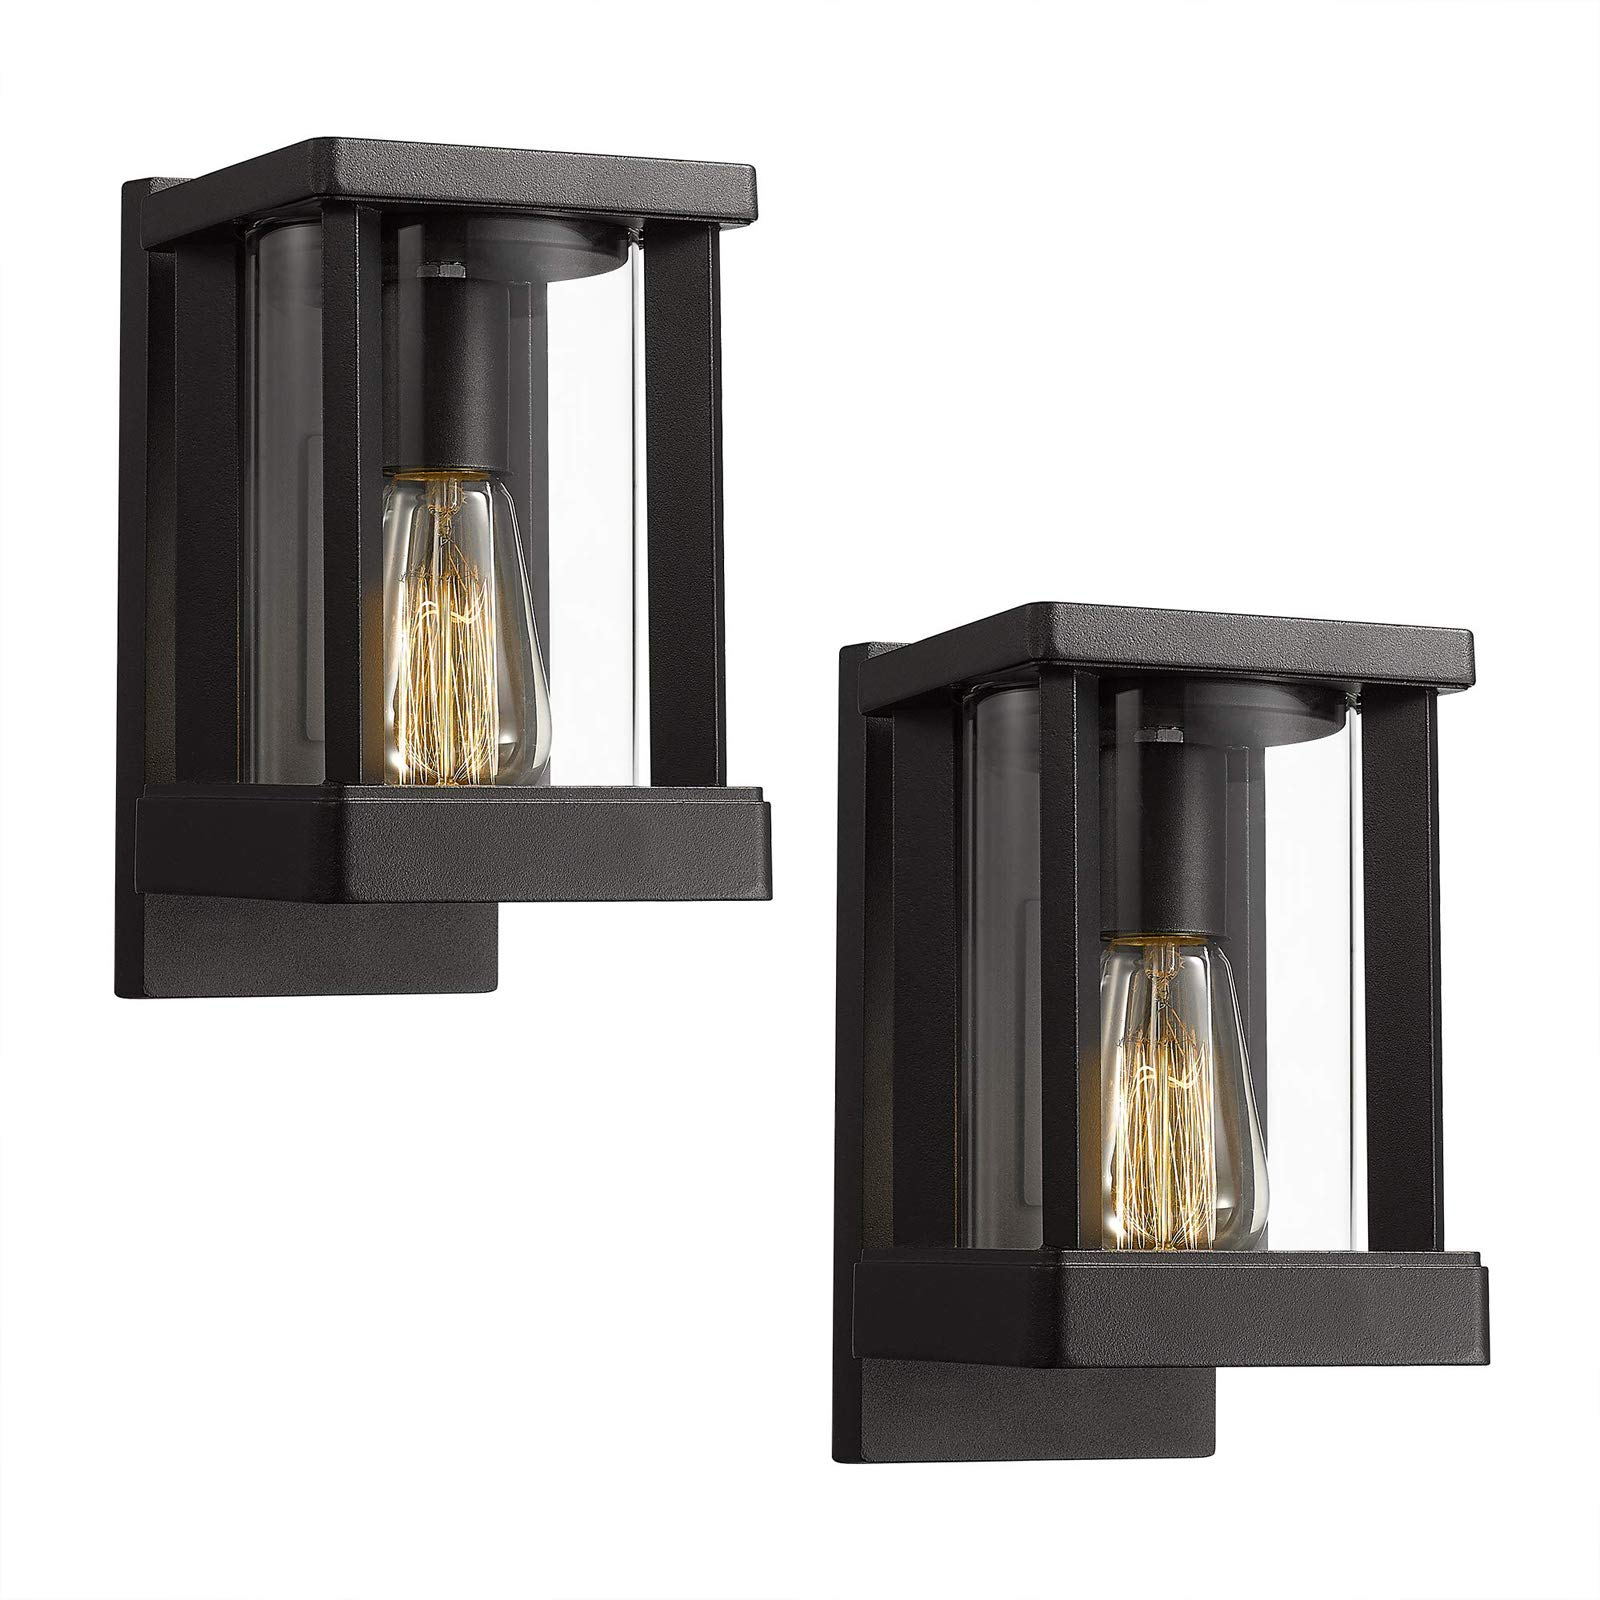 Zeyu 2 Pack Outdoor Wall Sconces, Outside Wall Lights for House, Black Finish with Clear Glass, 0371-WD-2PK BK-R